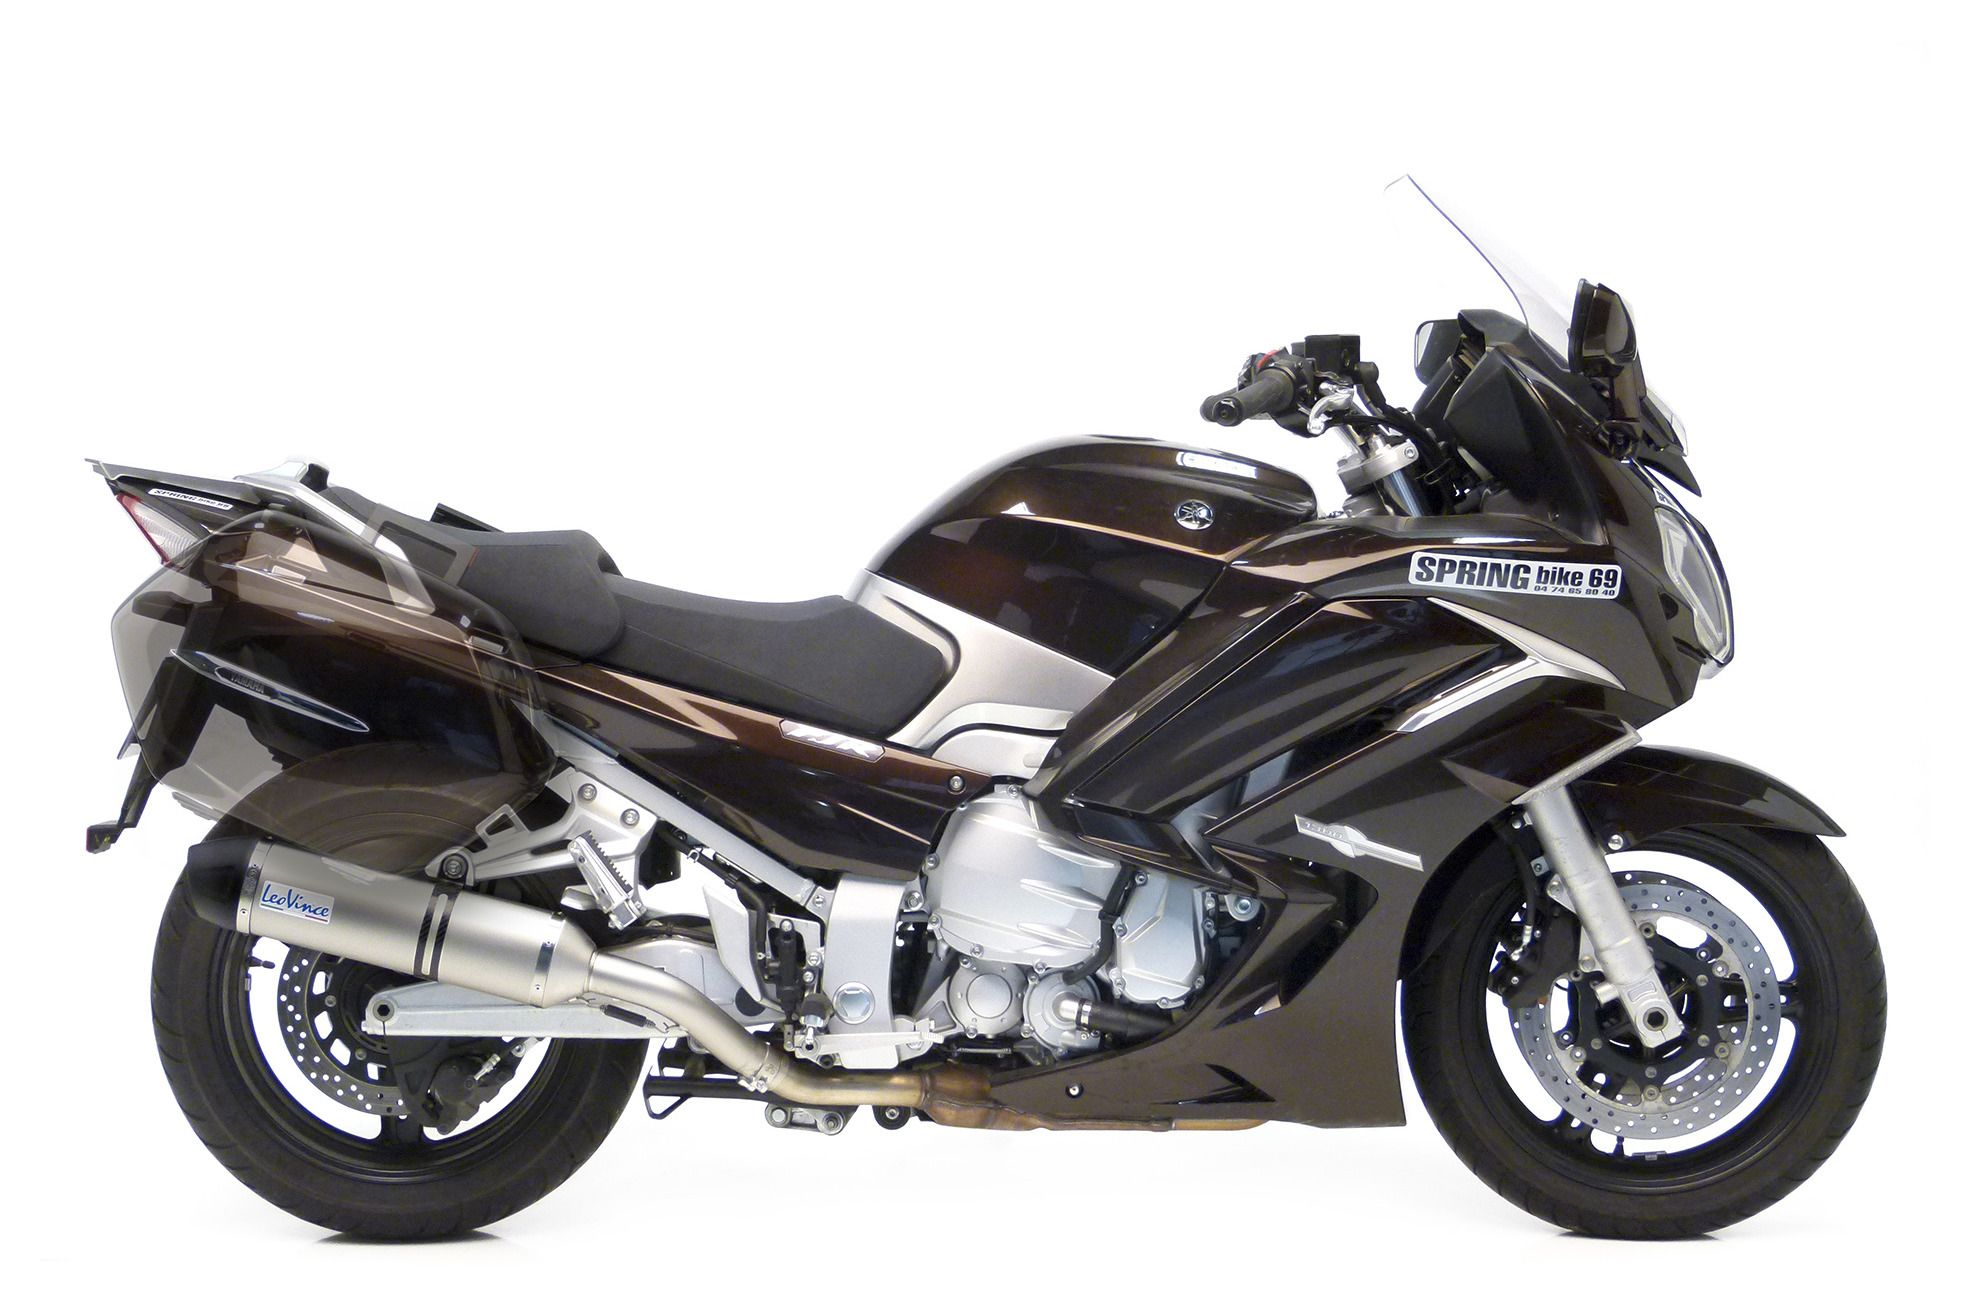 Leo Vince Lv One Evoii Slip On Exhaust Yamaha Fjr Stainless Steel on Leo Vince Exhaust Motorcycle From Leovince Revzilla